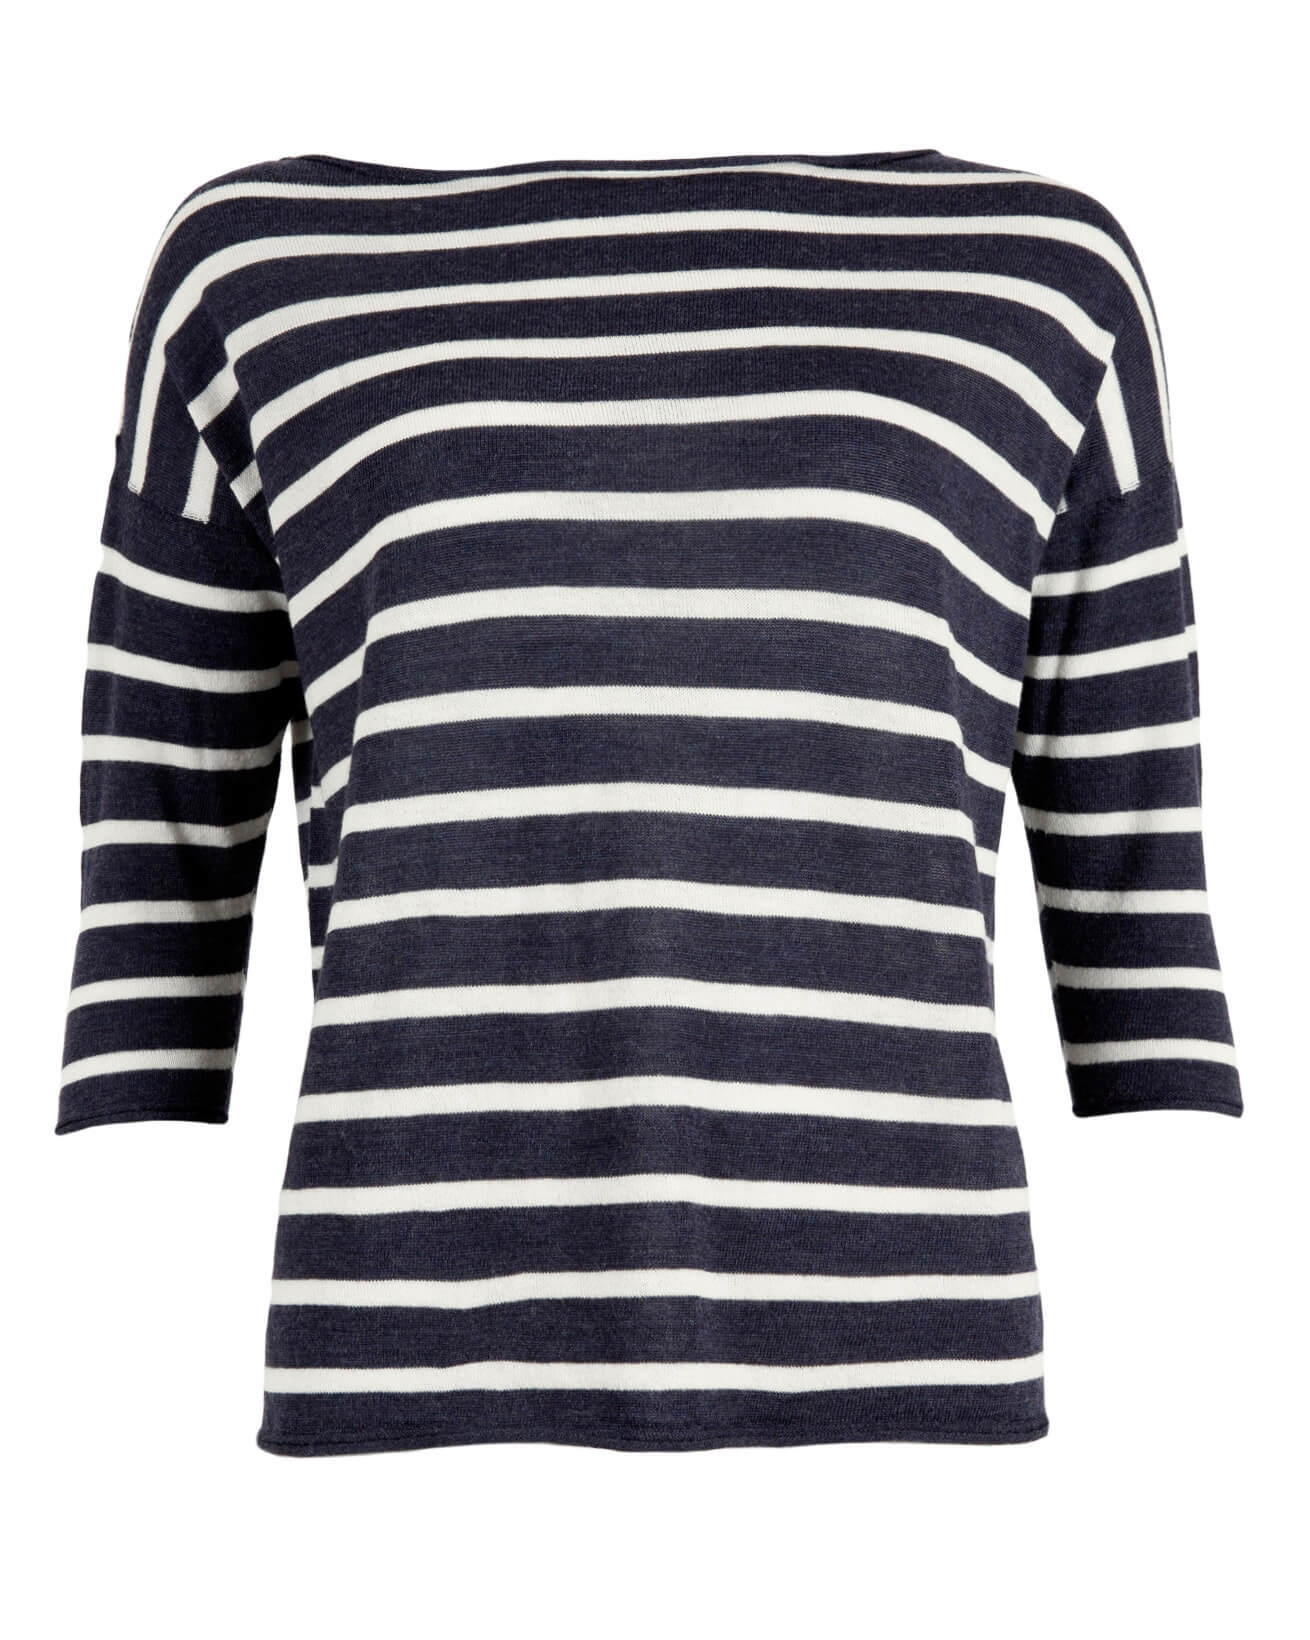 7558-boat-neck-merino-top-navy-stripe-front_comp.jpg